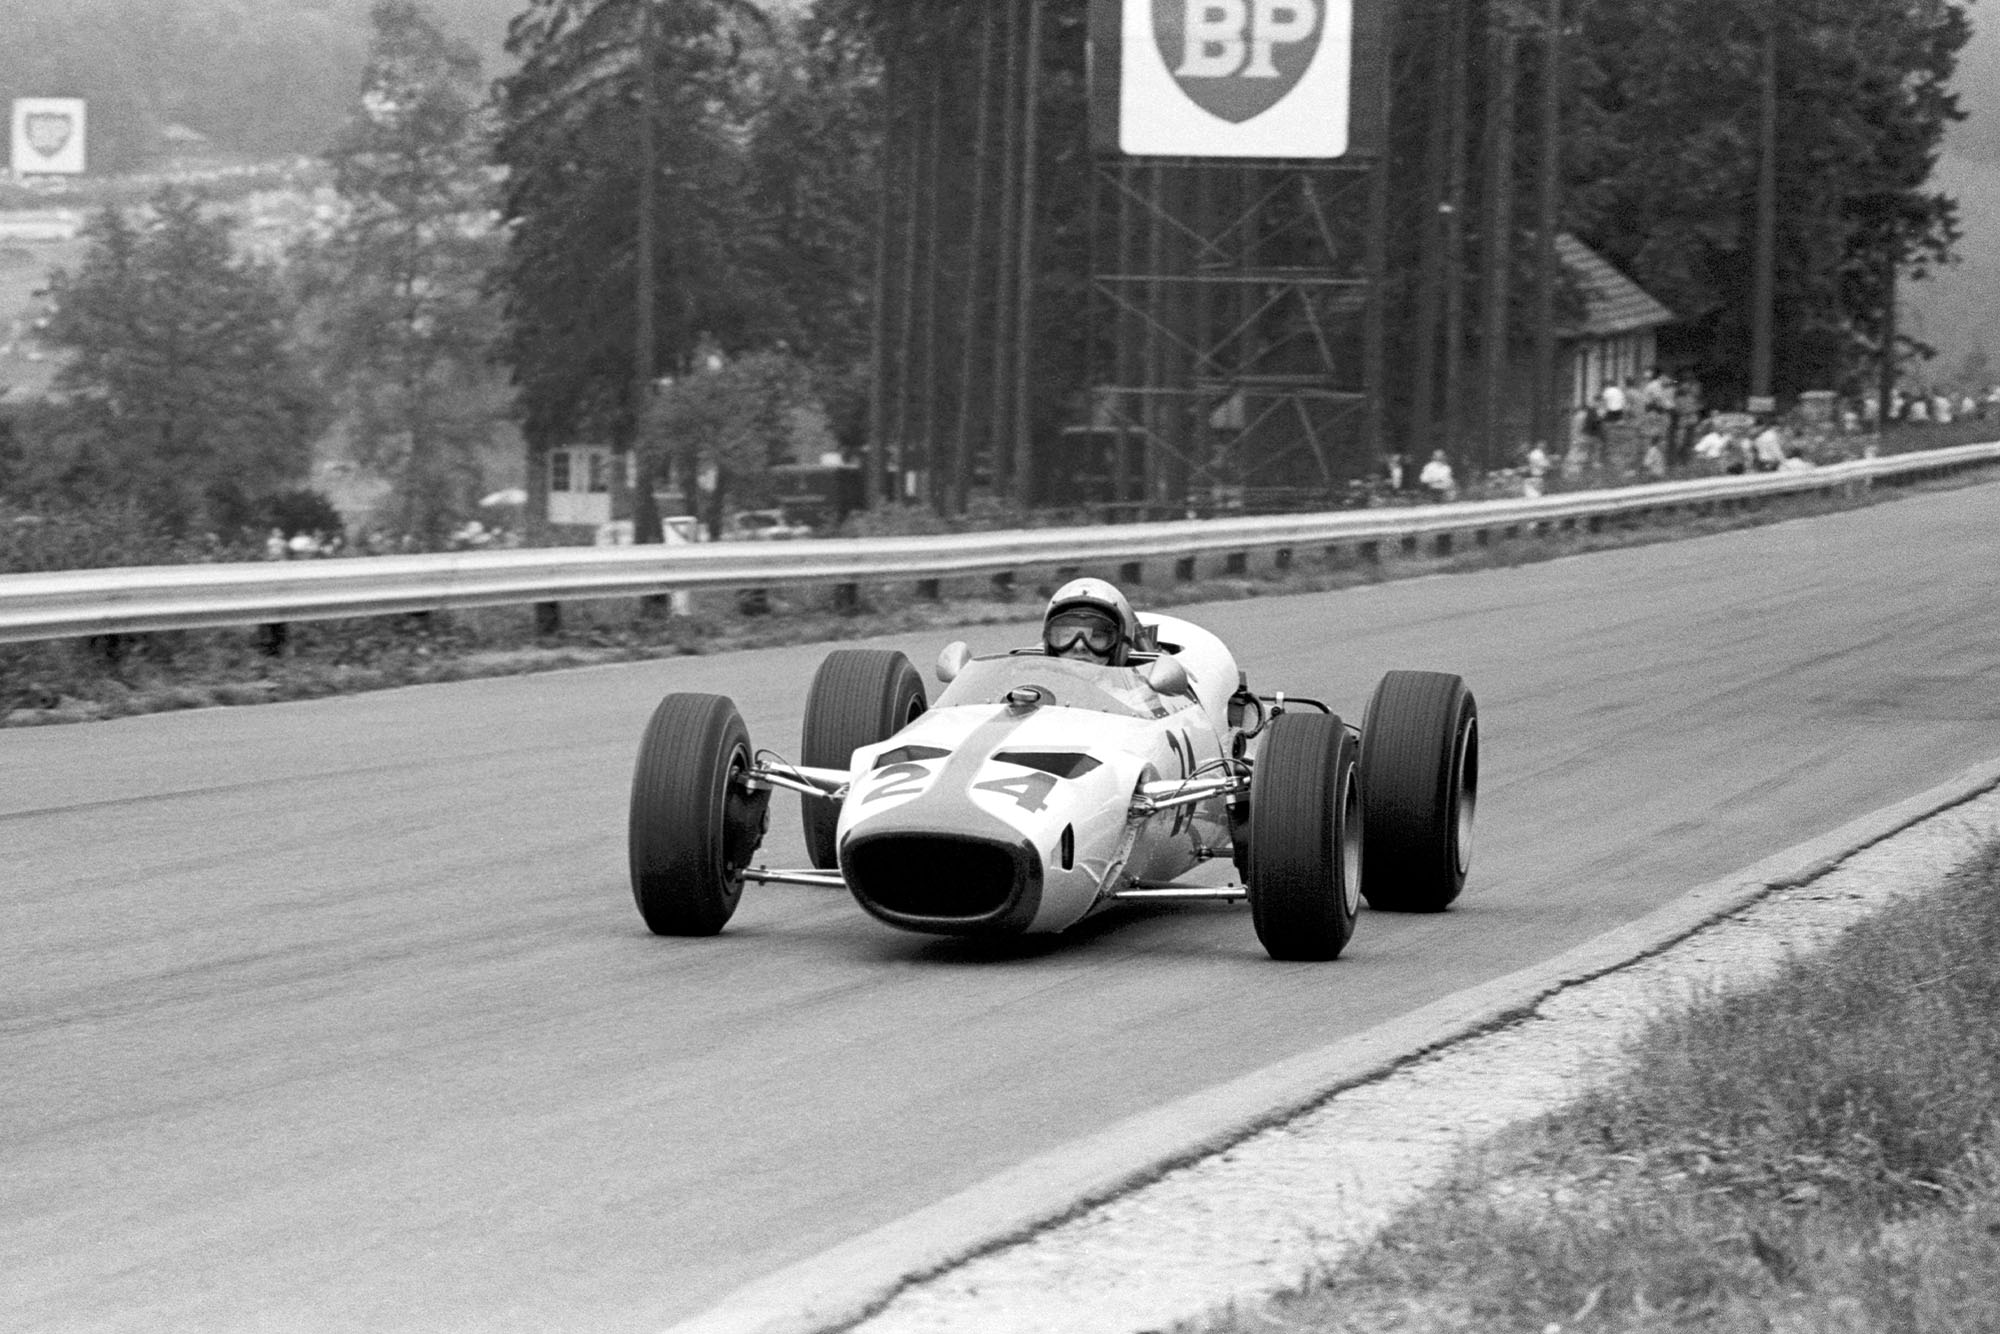 Bruce McLaren (NZL) powered his McLaren M2B with a 3.0 litre Serenissima V8 sportscar engine, but the engine prevented him from taking part in the race when its bearings failed.